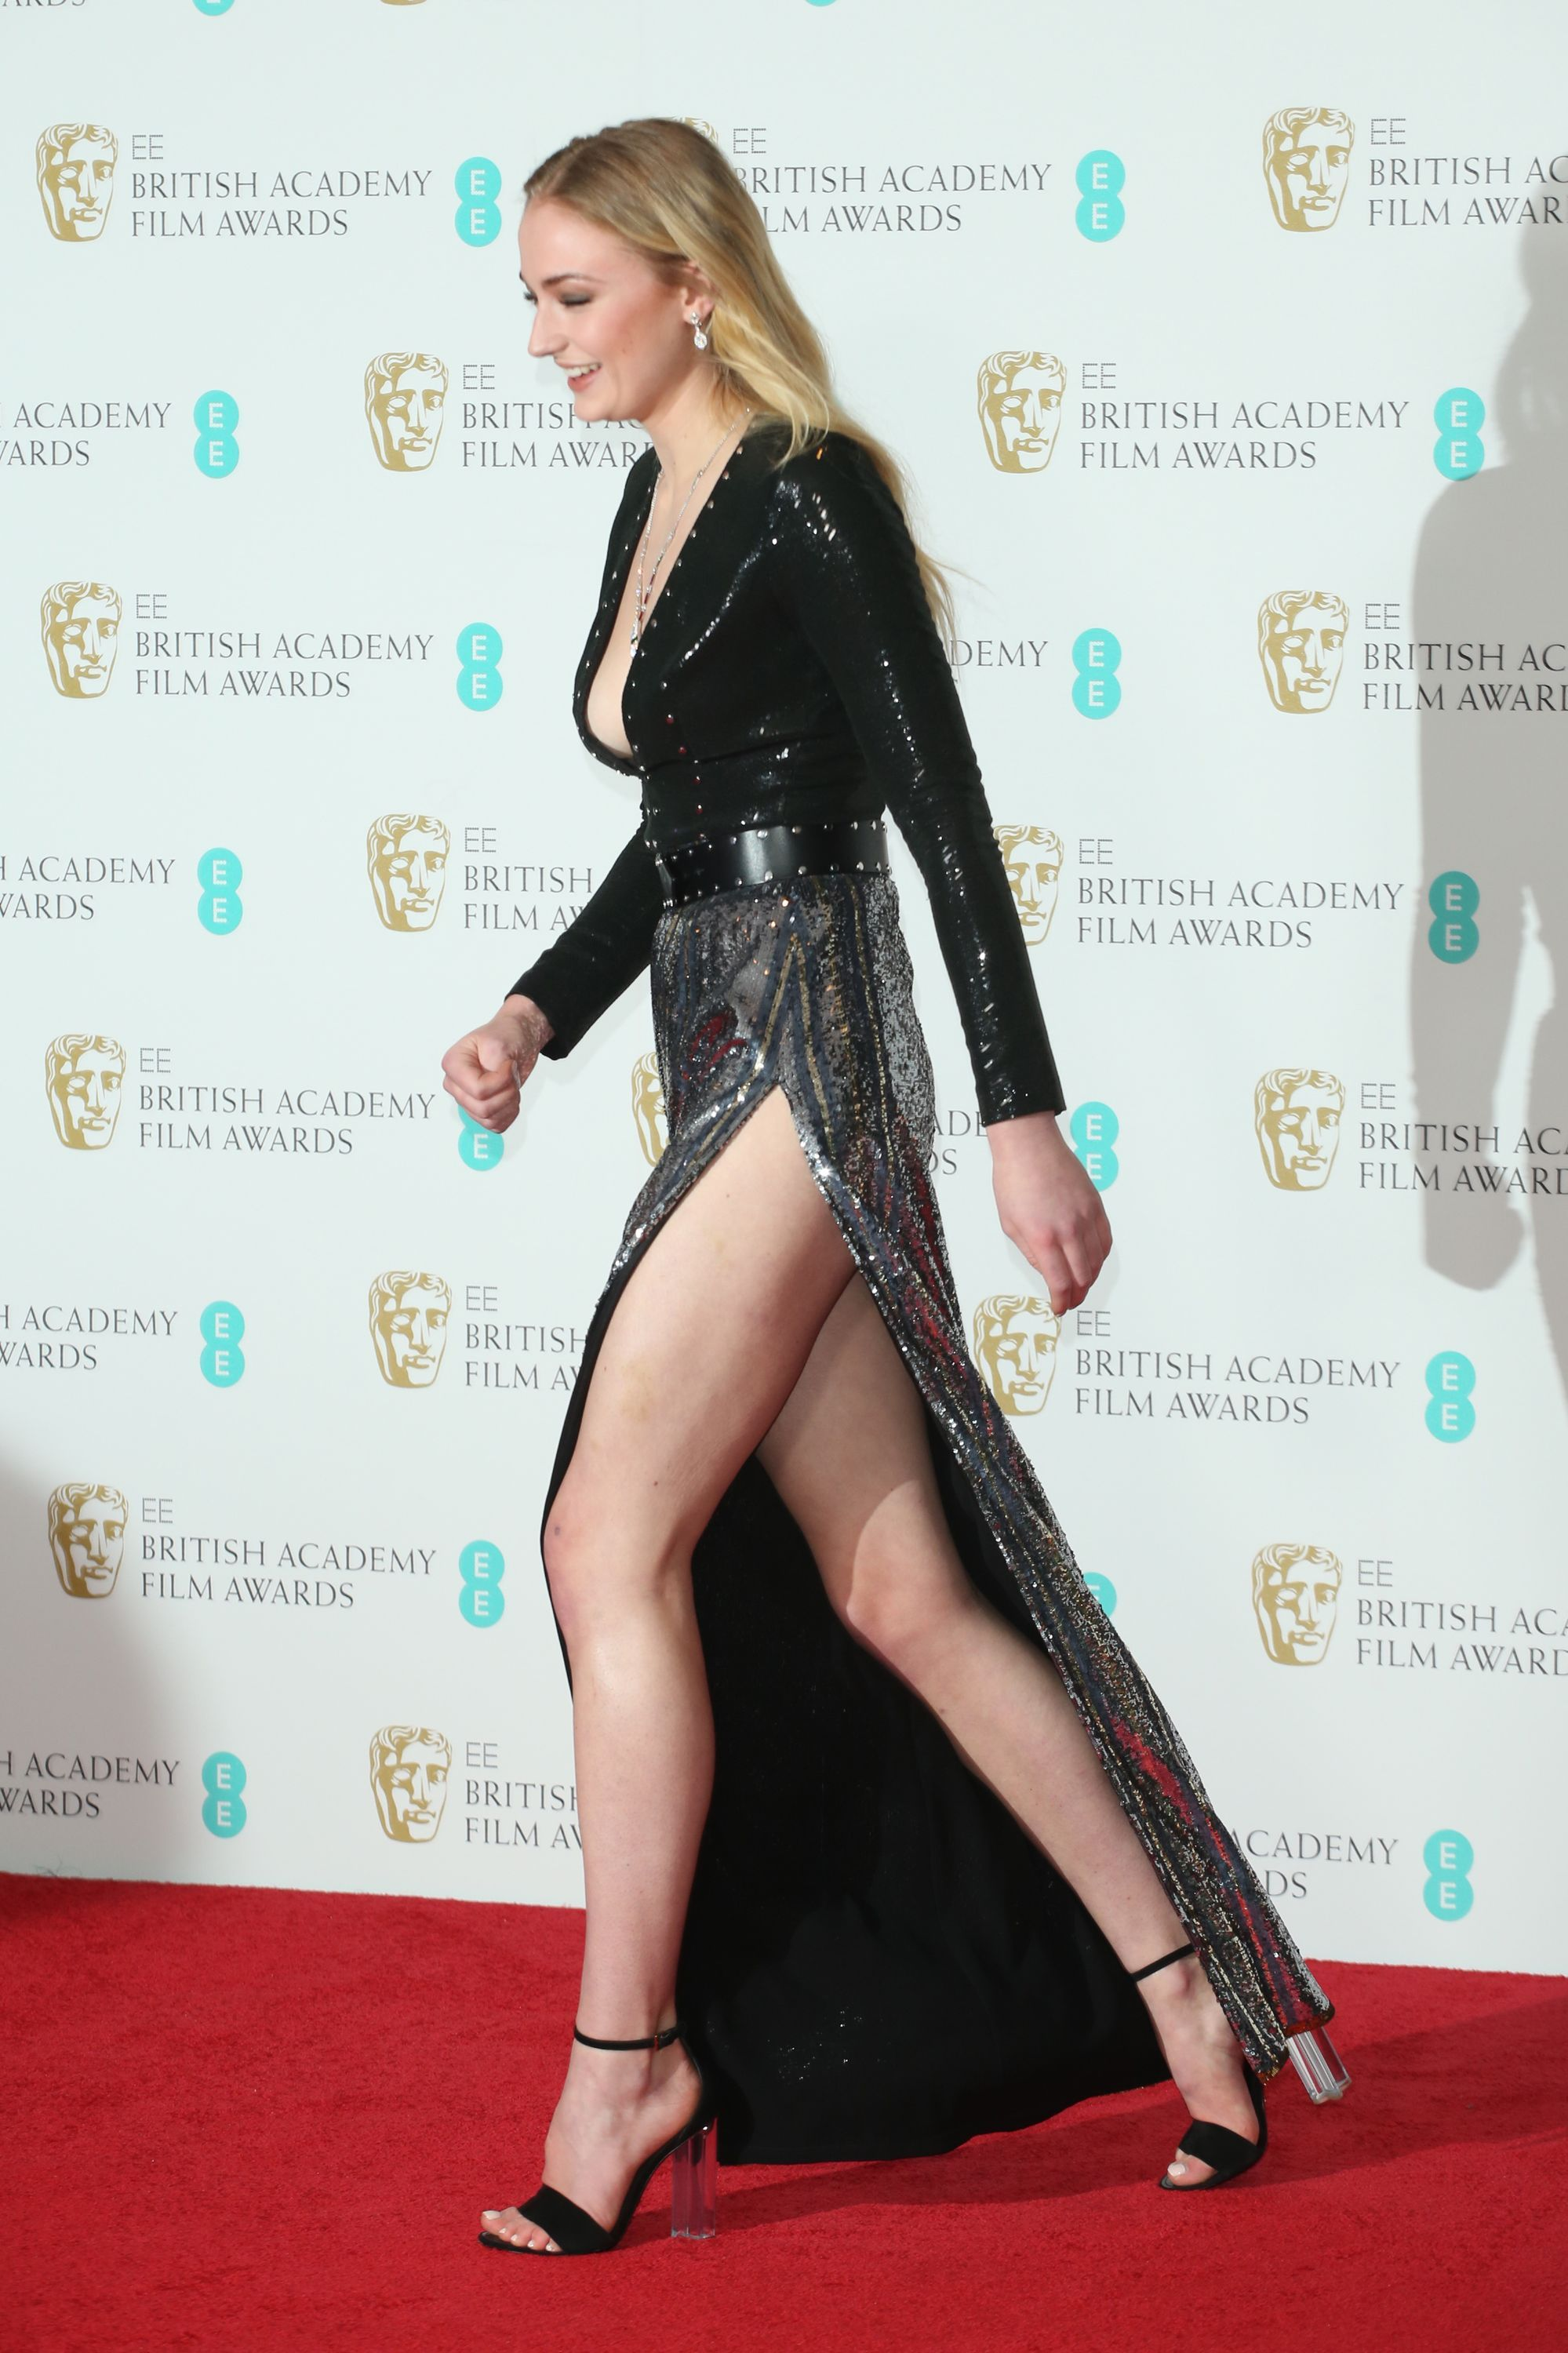 Sophie Turner on Red Carpet